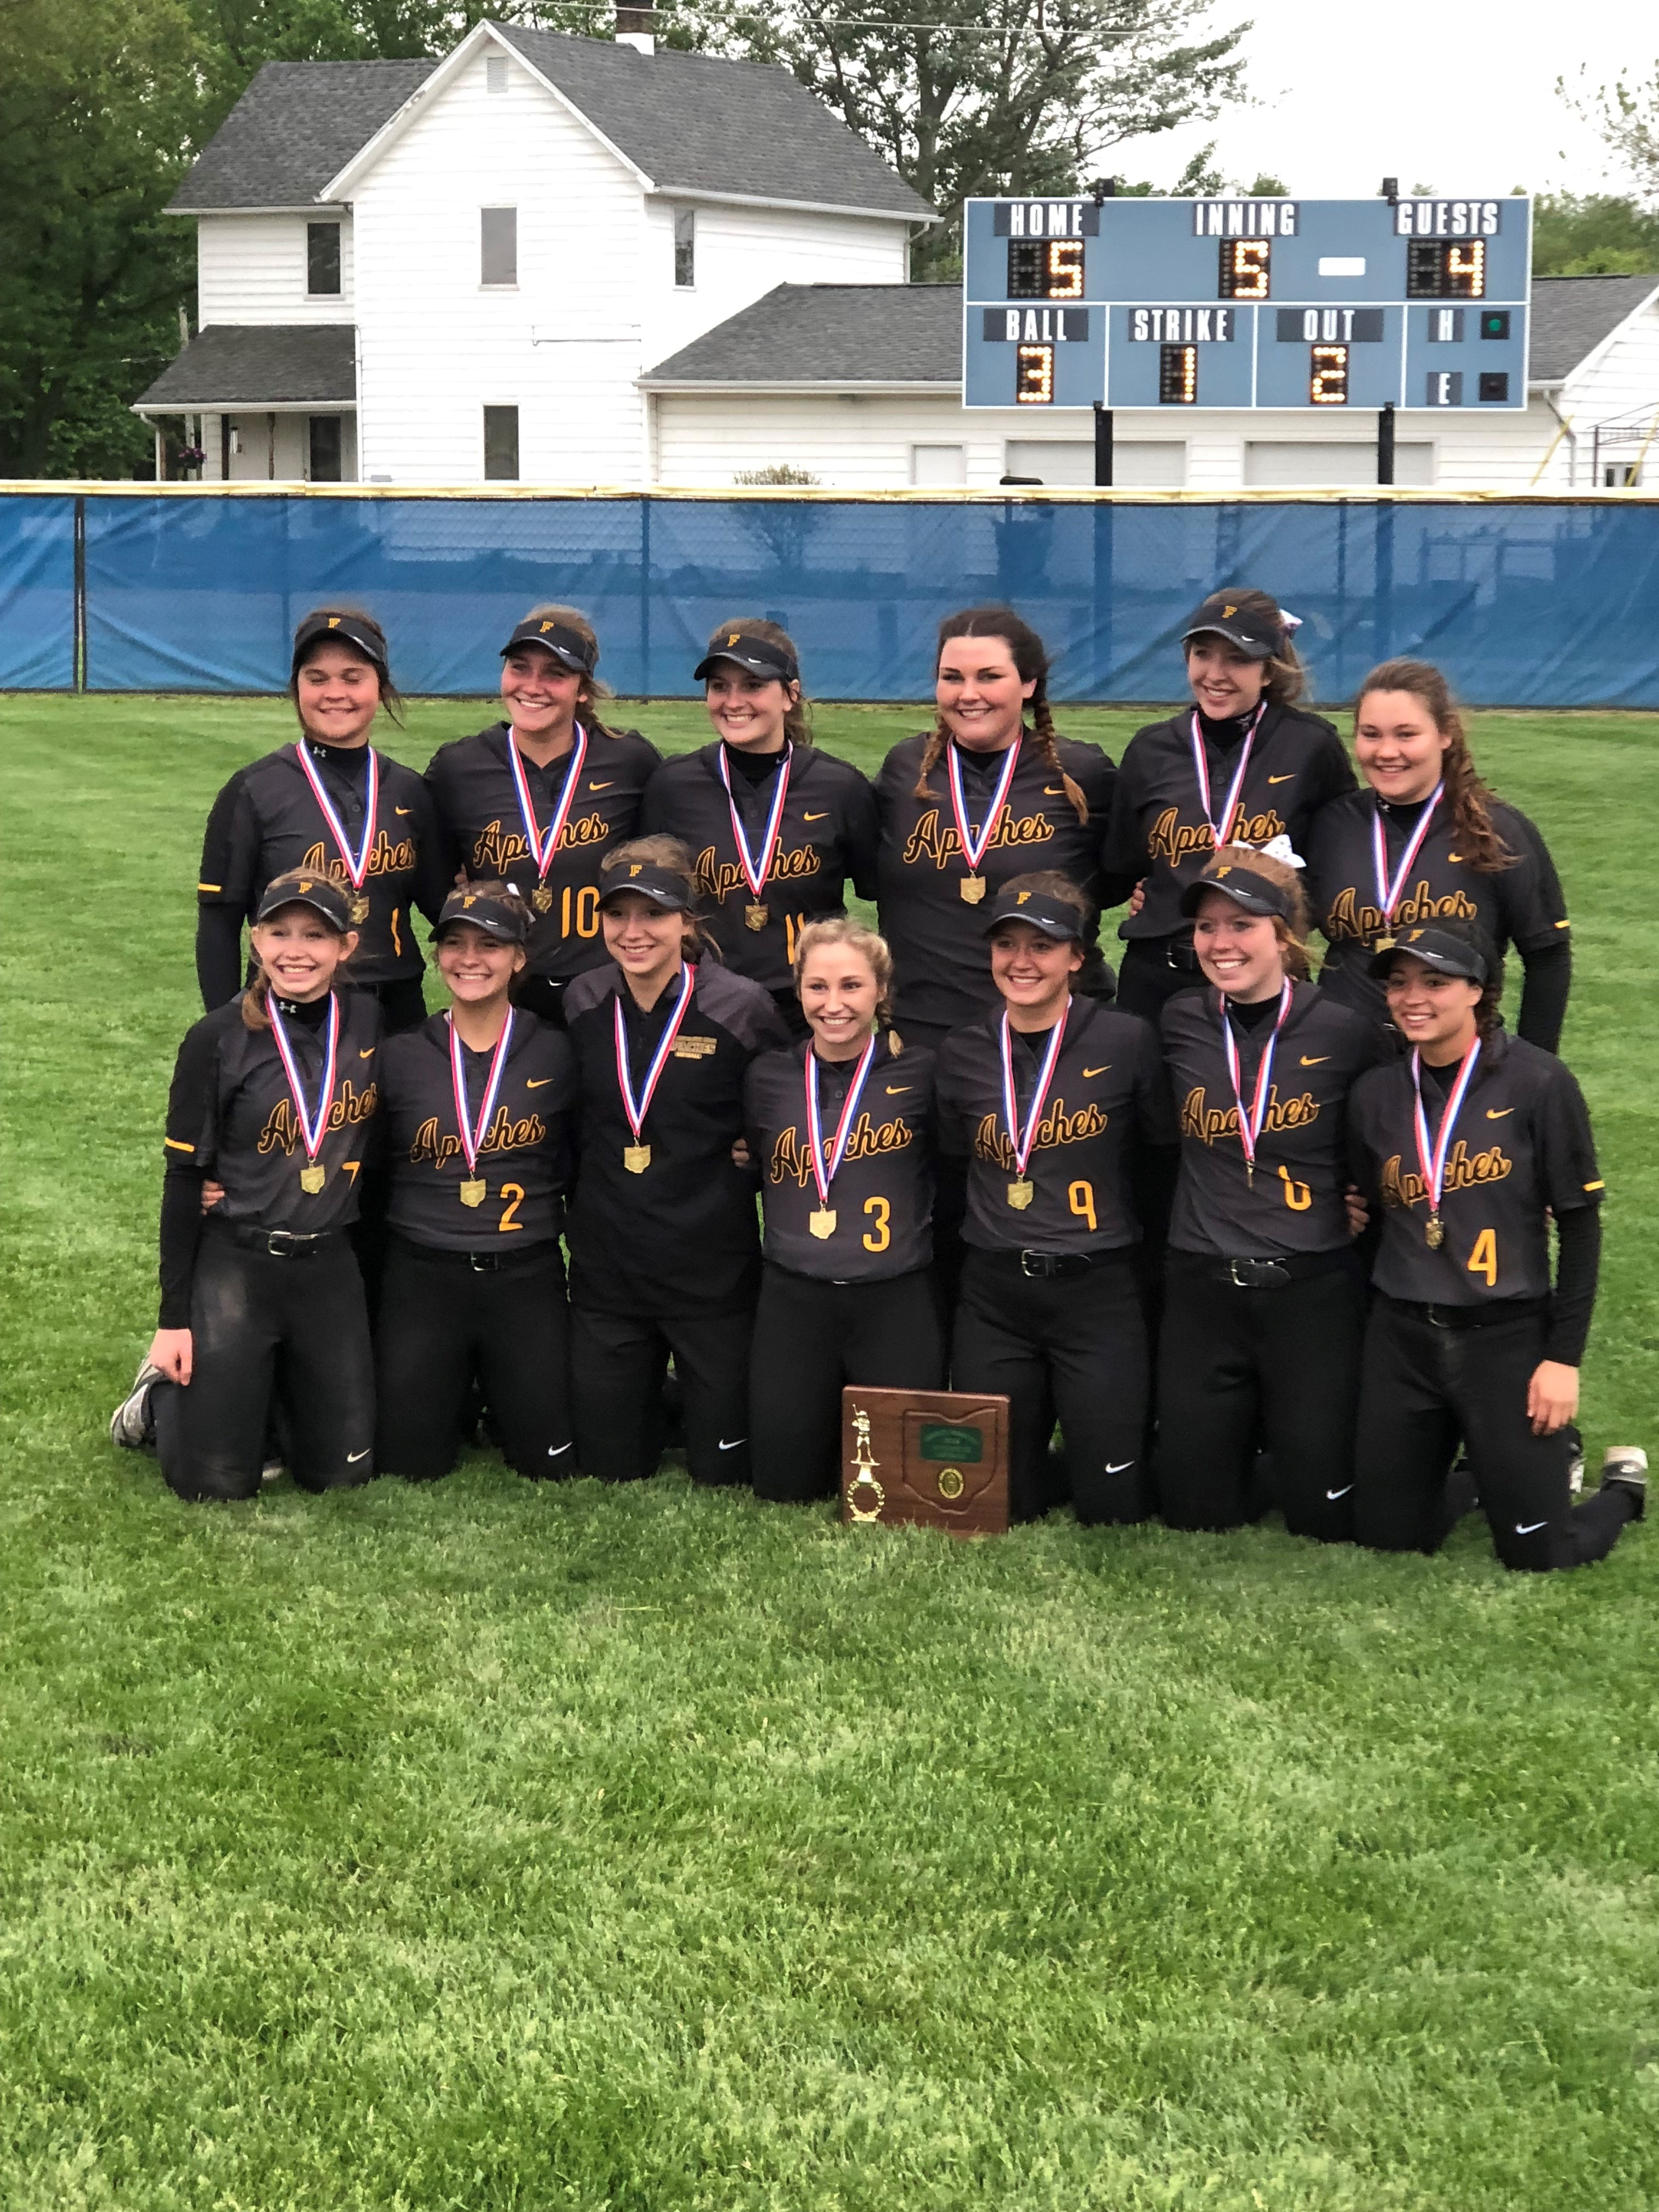 Softball team defeats Patrick Henry 5-4 to win District Title